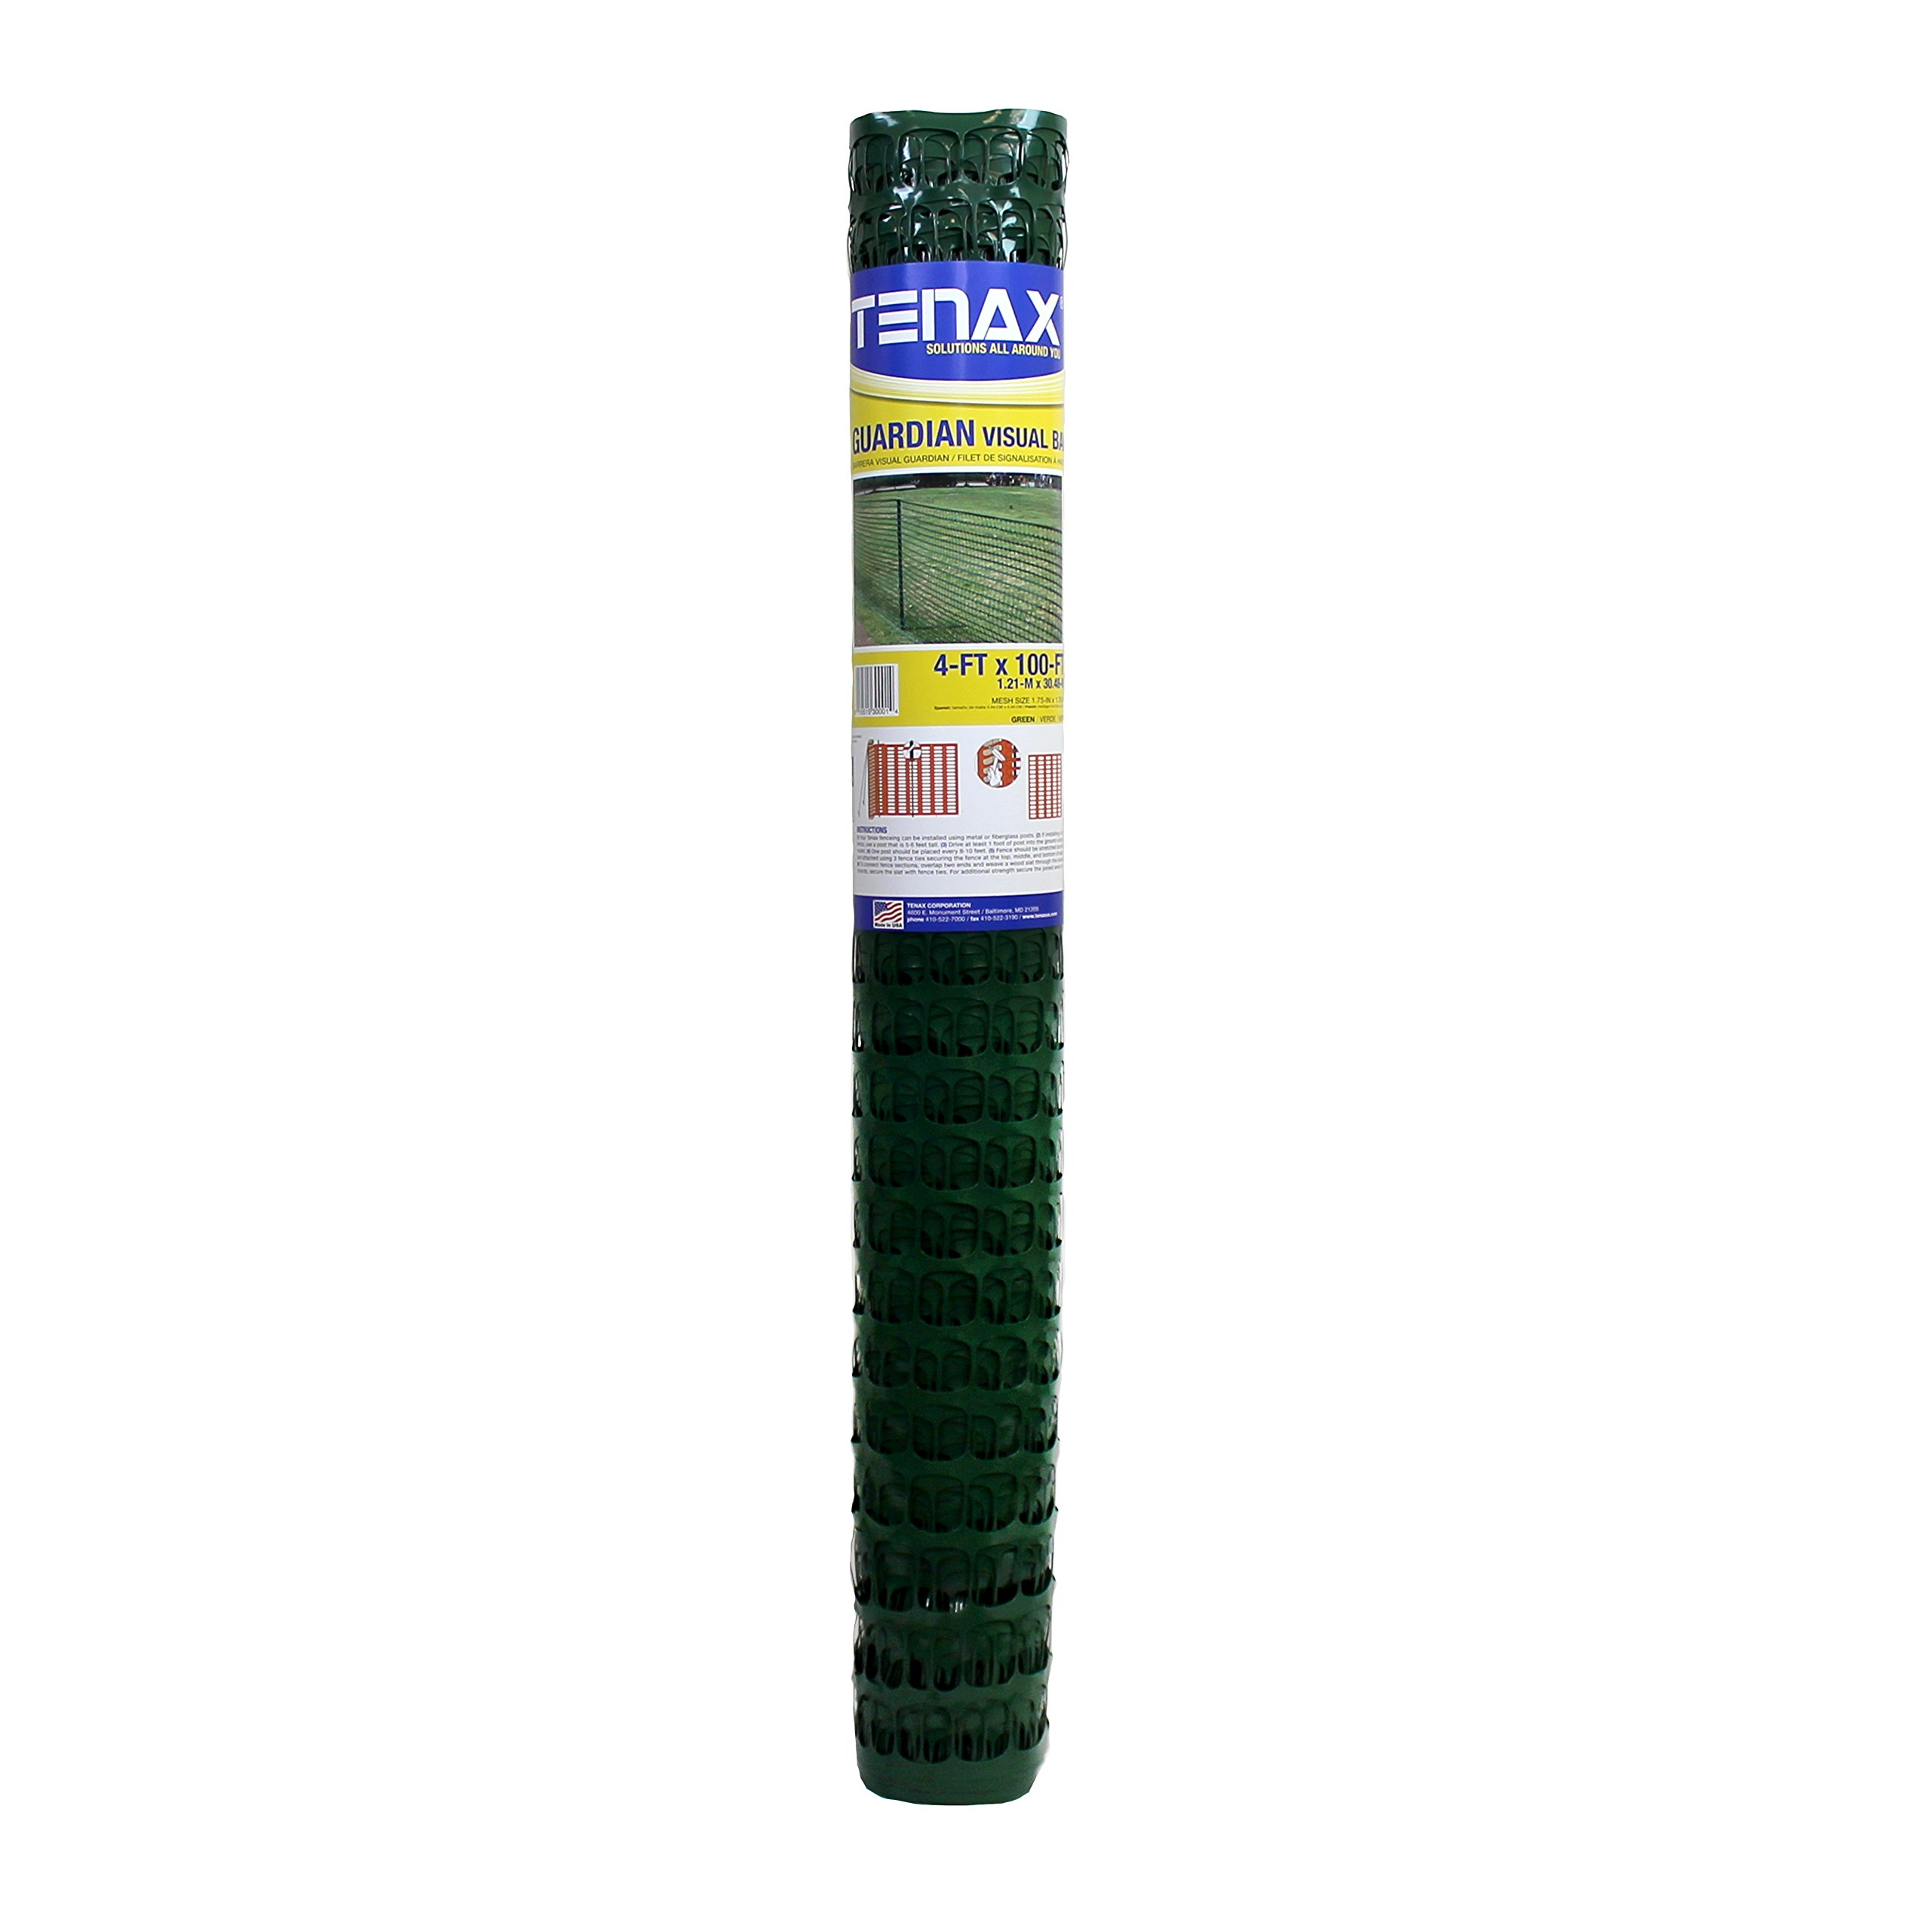 Tenax 5A030001 Guardian Warning Barrier, 4' x 100', Green by Tenax